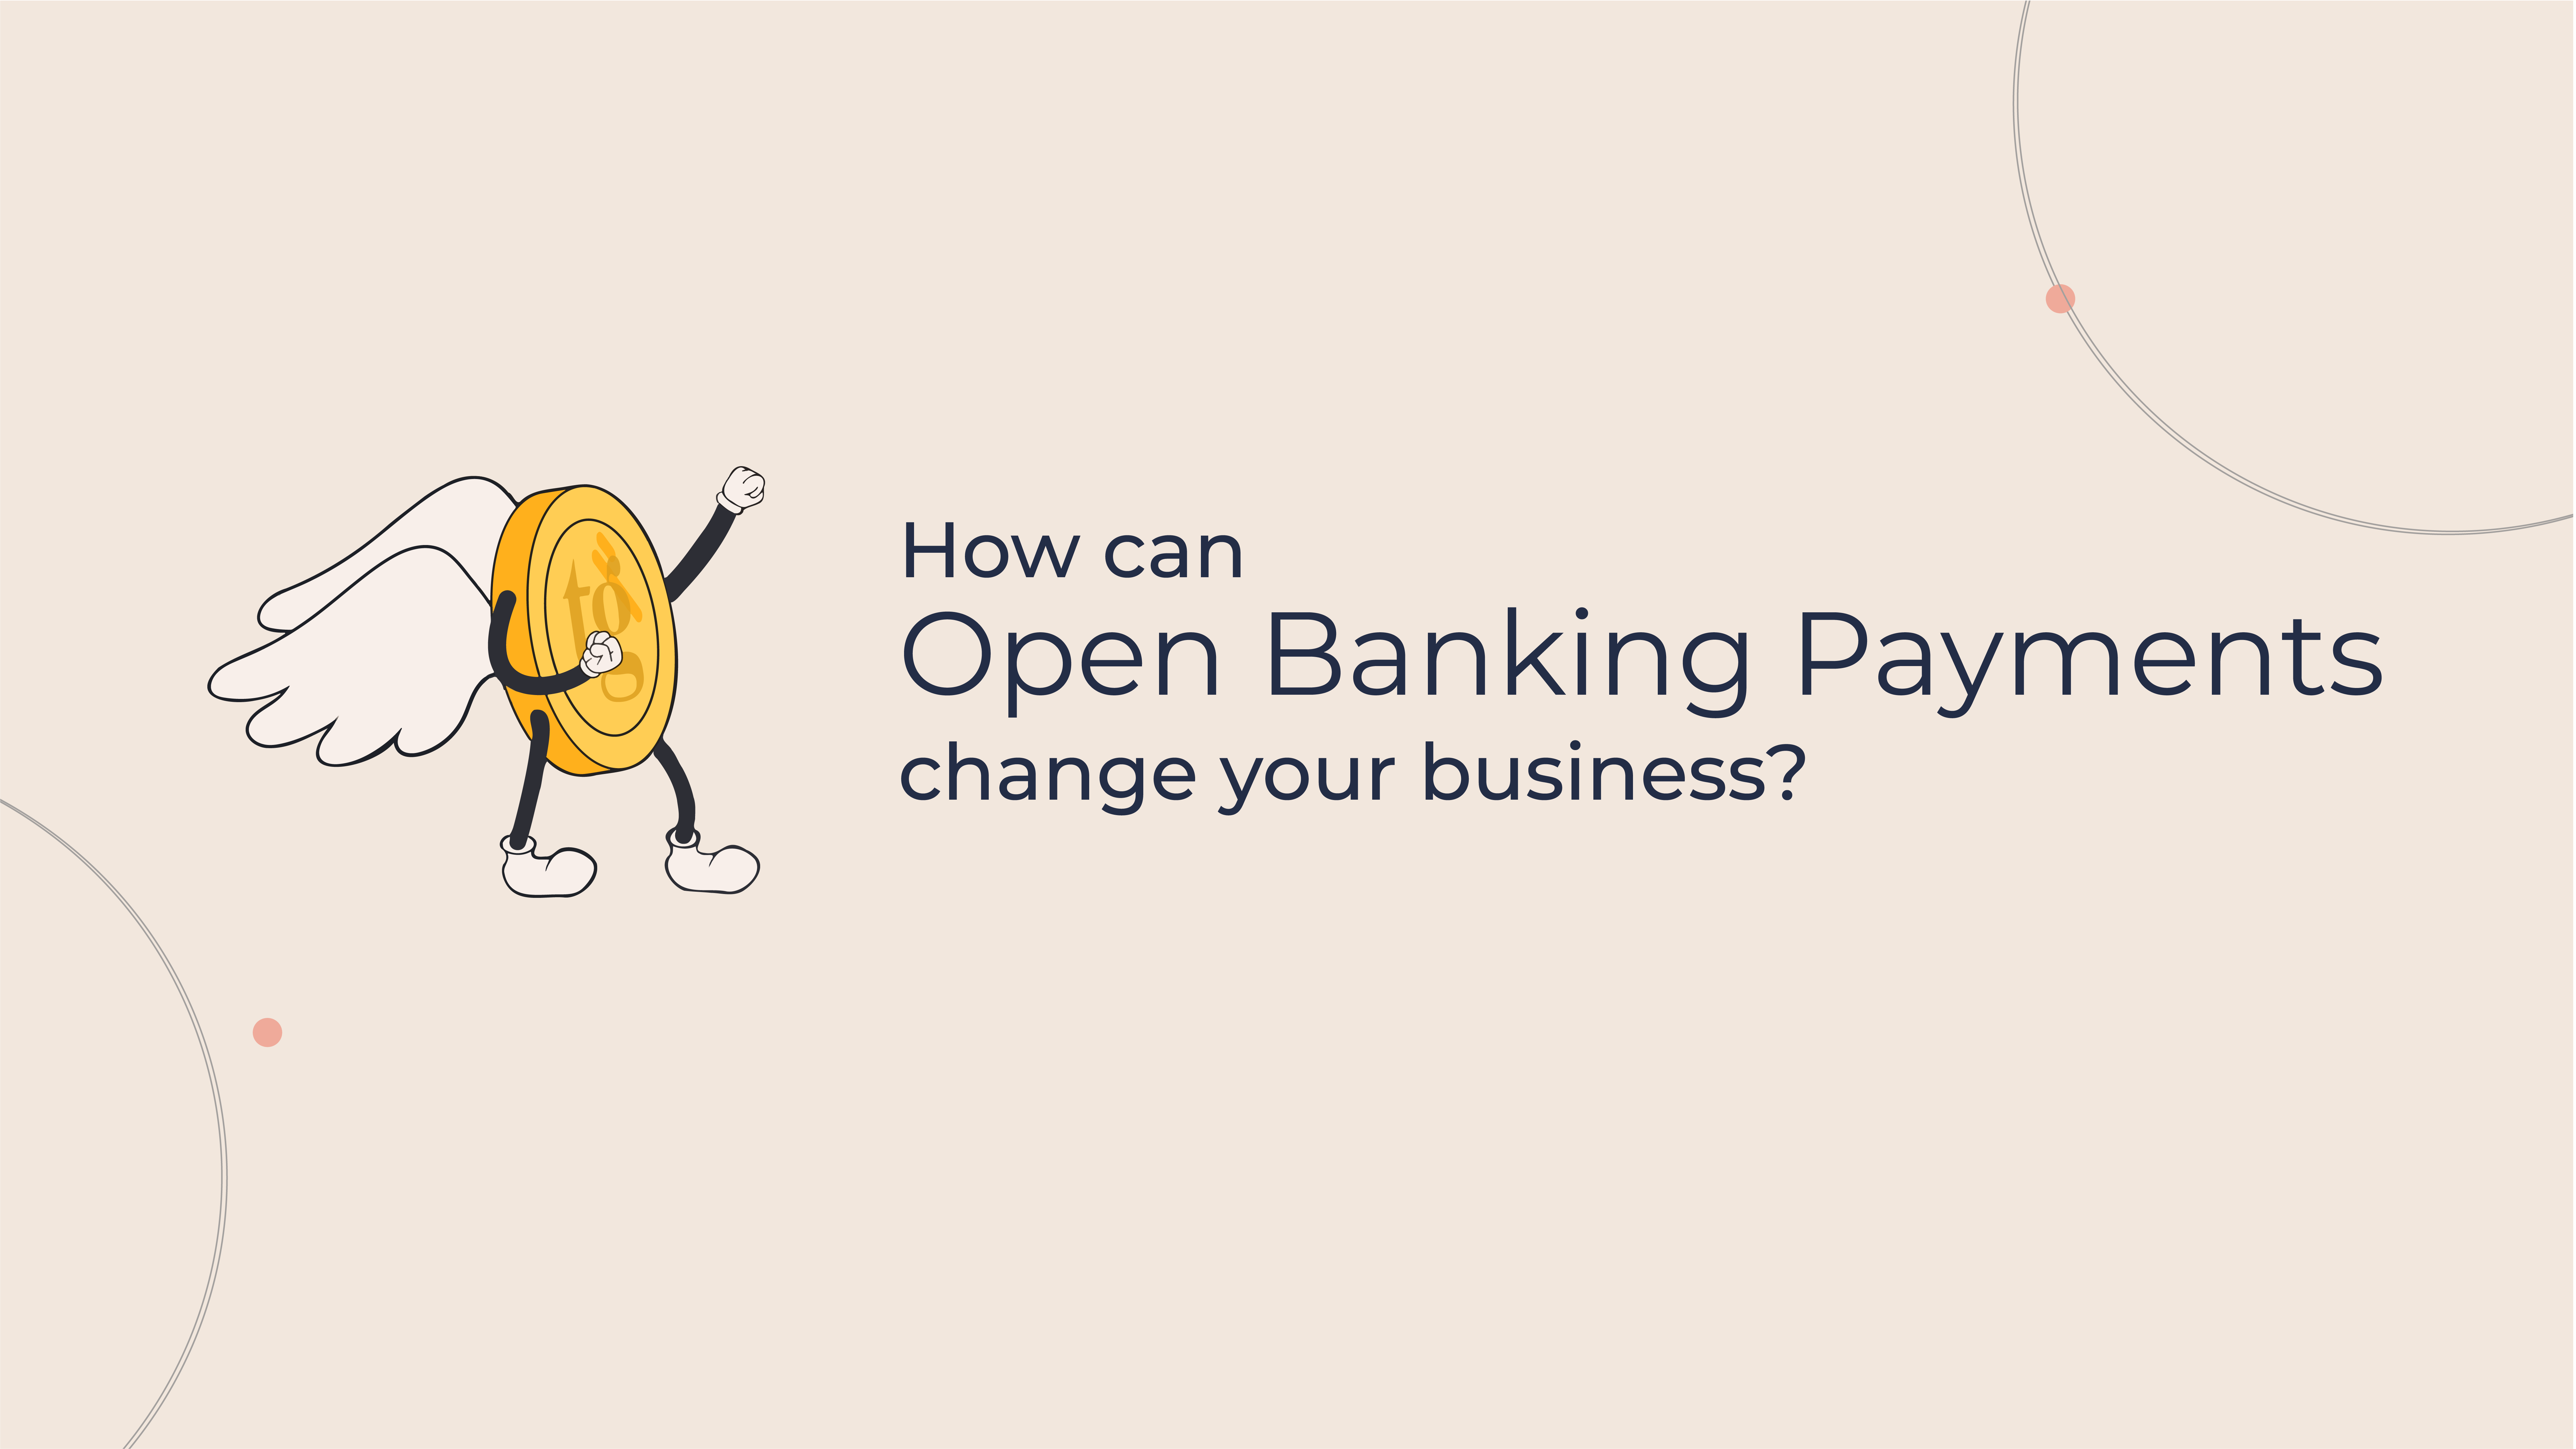 How Can Open Banking Payments Change Your Business?